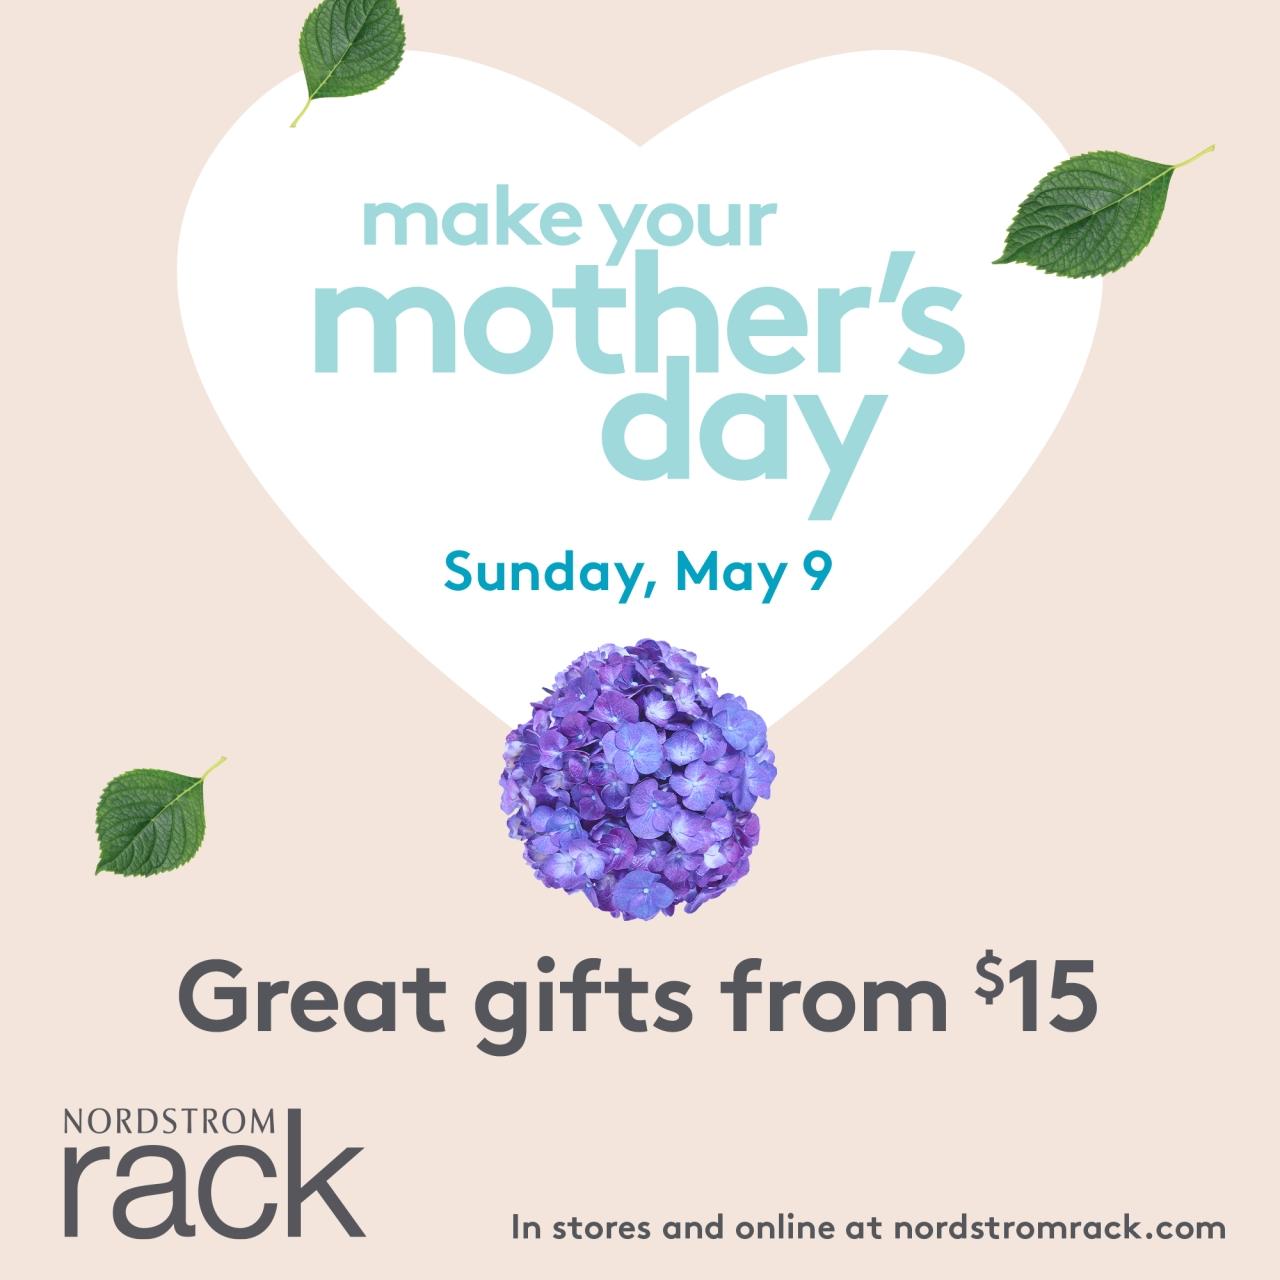 Nordstrom Rack Mother's Day Gifts